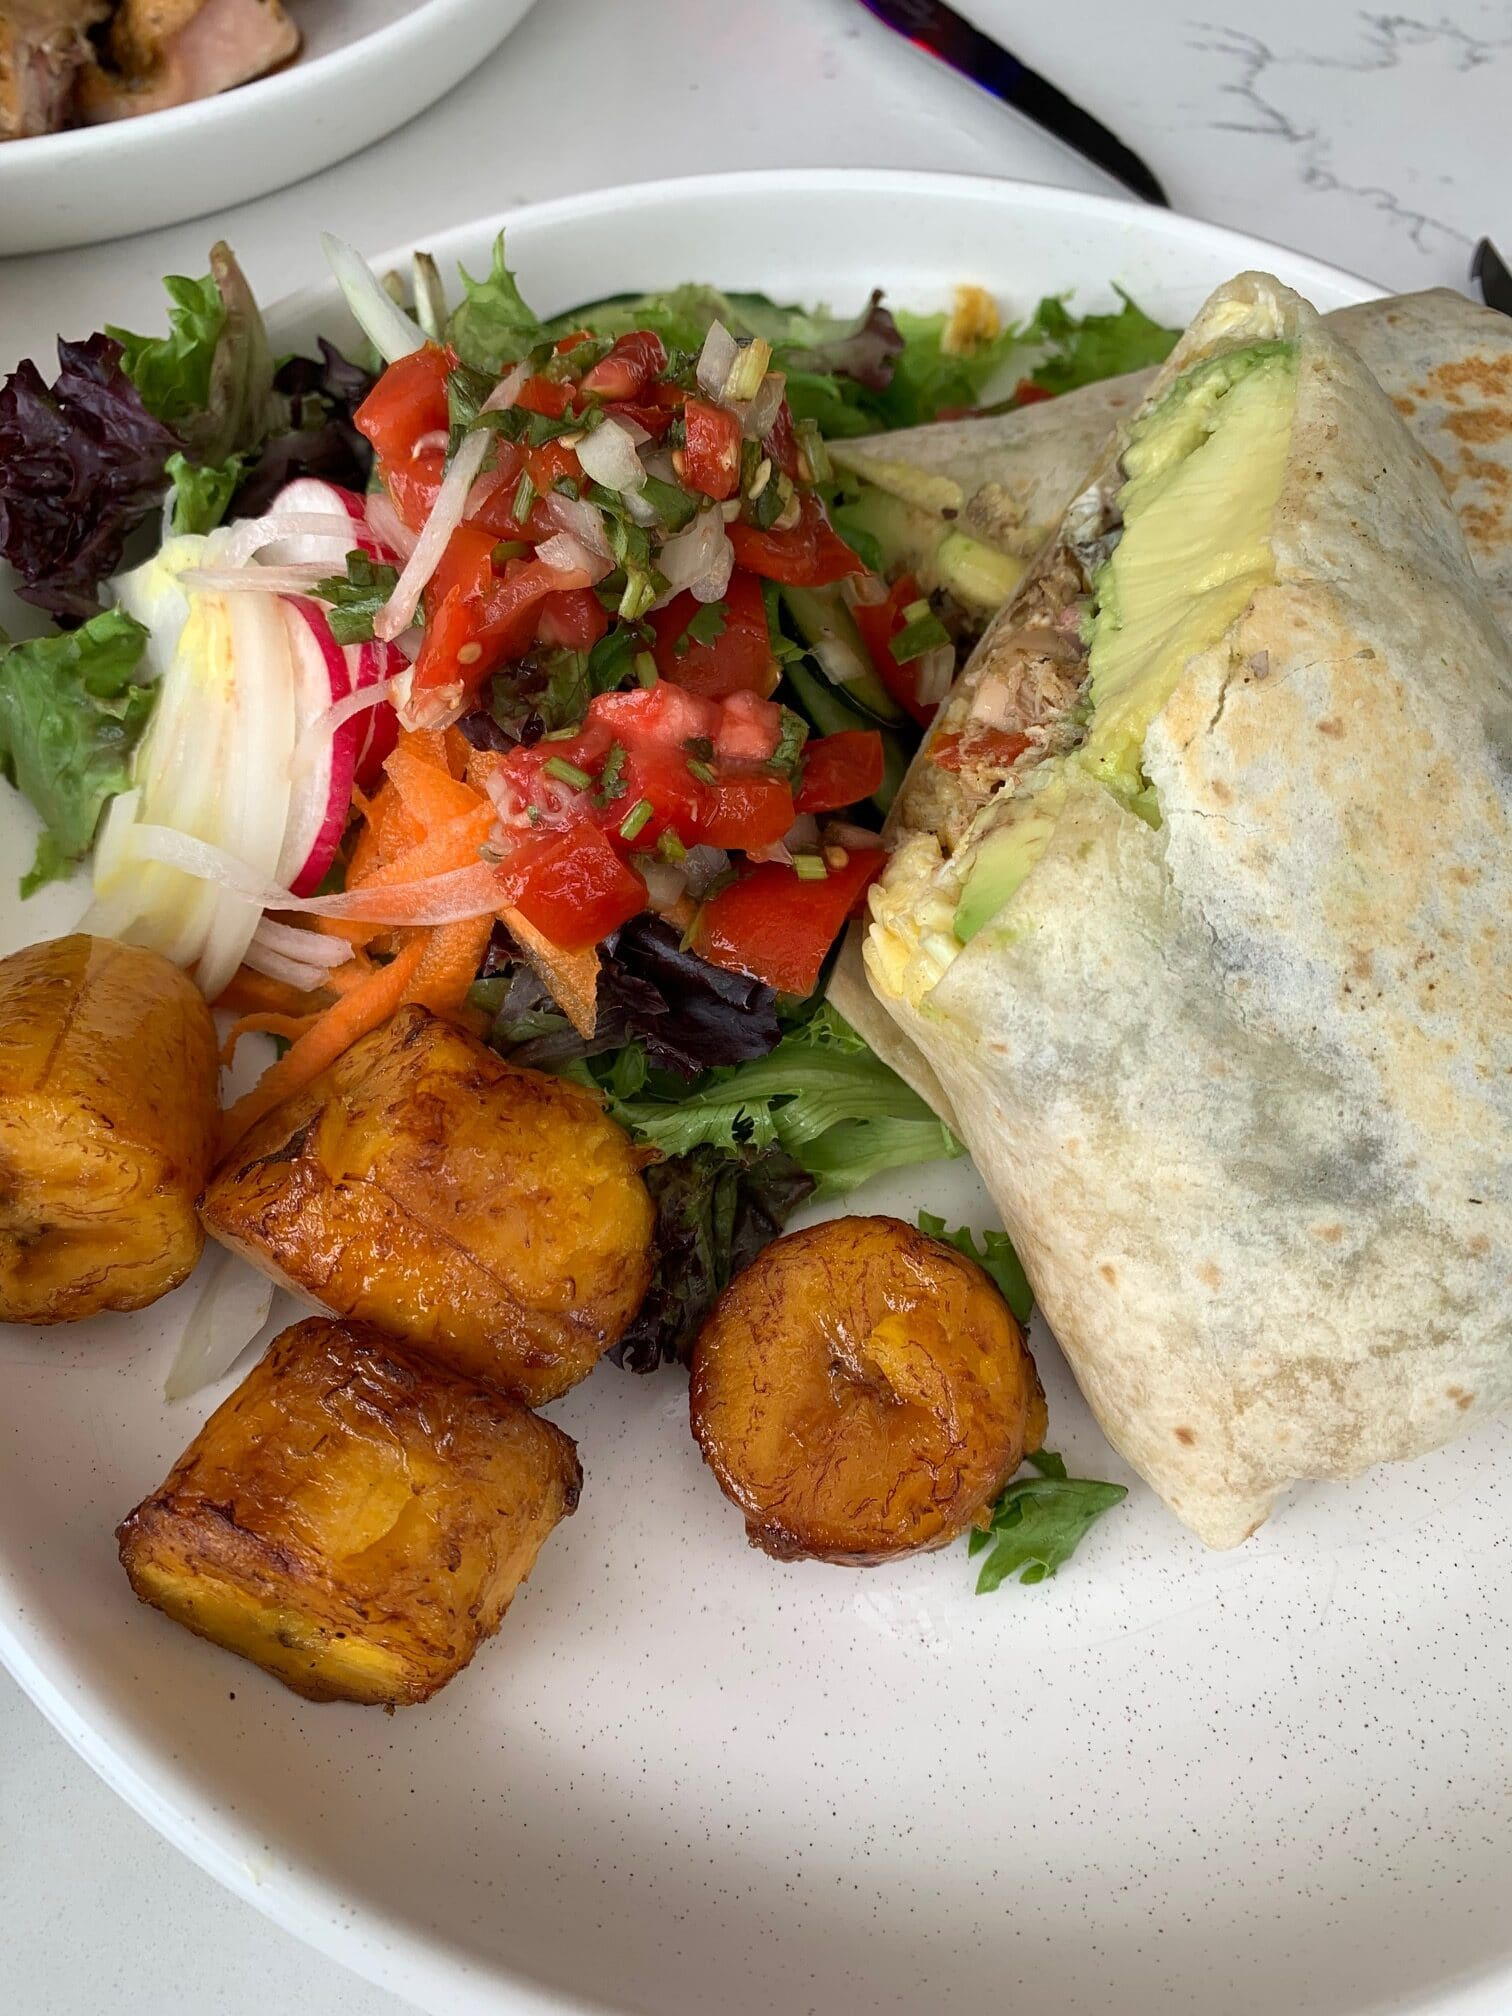 Tortilla roll filled with chicken, side of plantains and salad